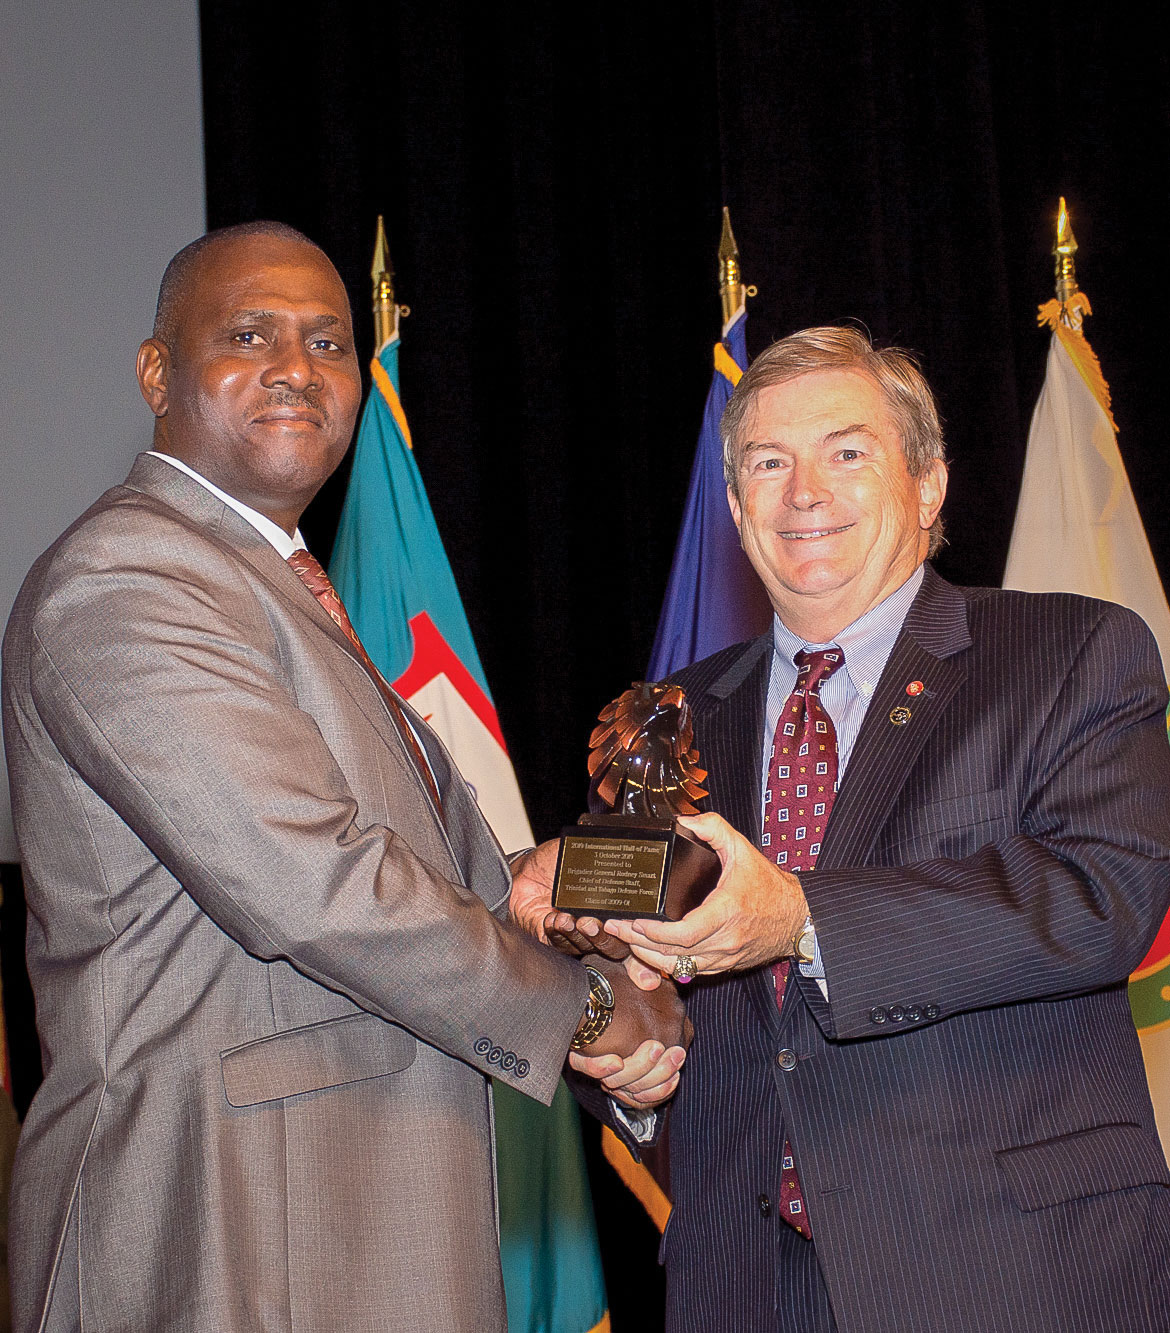 After unveiling his International Hall of Fame portrait, IHOF inductee retired Maj. Gen. Rodney Smart, former chief of Defence Staff of the Trinidad and Tobago Defence Force, receives an eagle statuette gift from Michael Hockley, chairman of the board of the Command and General Staff College Foundation, during his IHOF induction ceremony Oct. 3, 2019, at the Lewis and Clark Center.